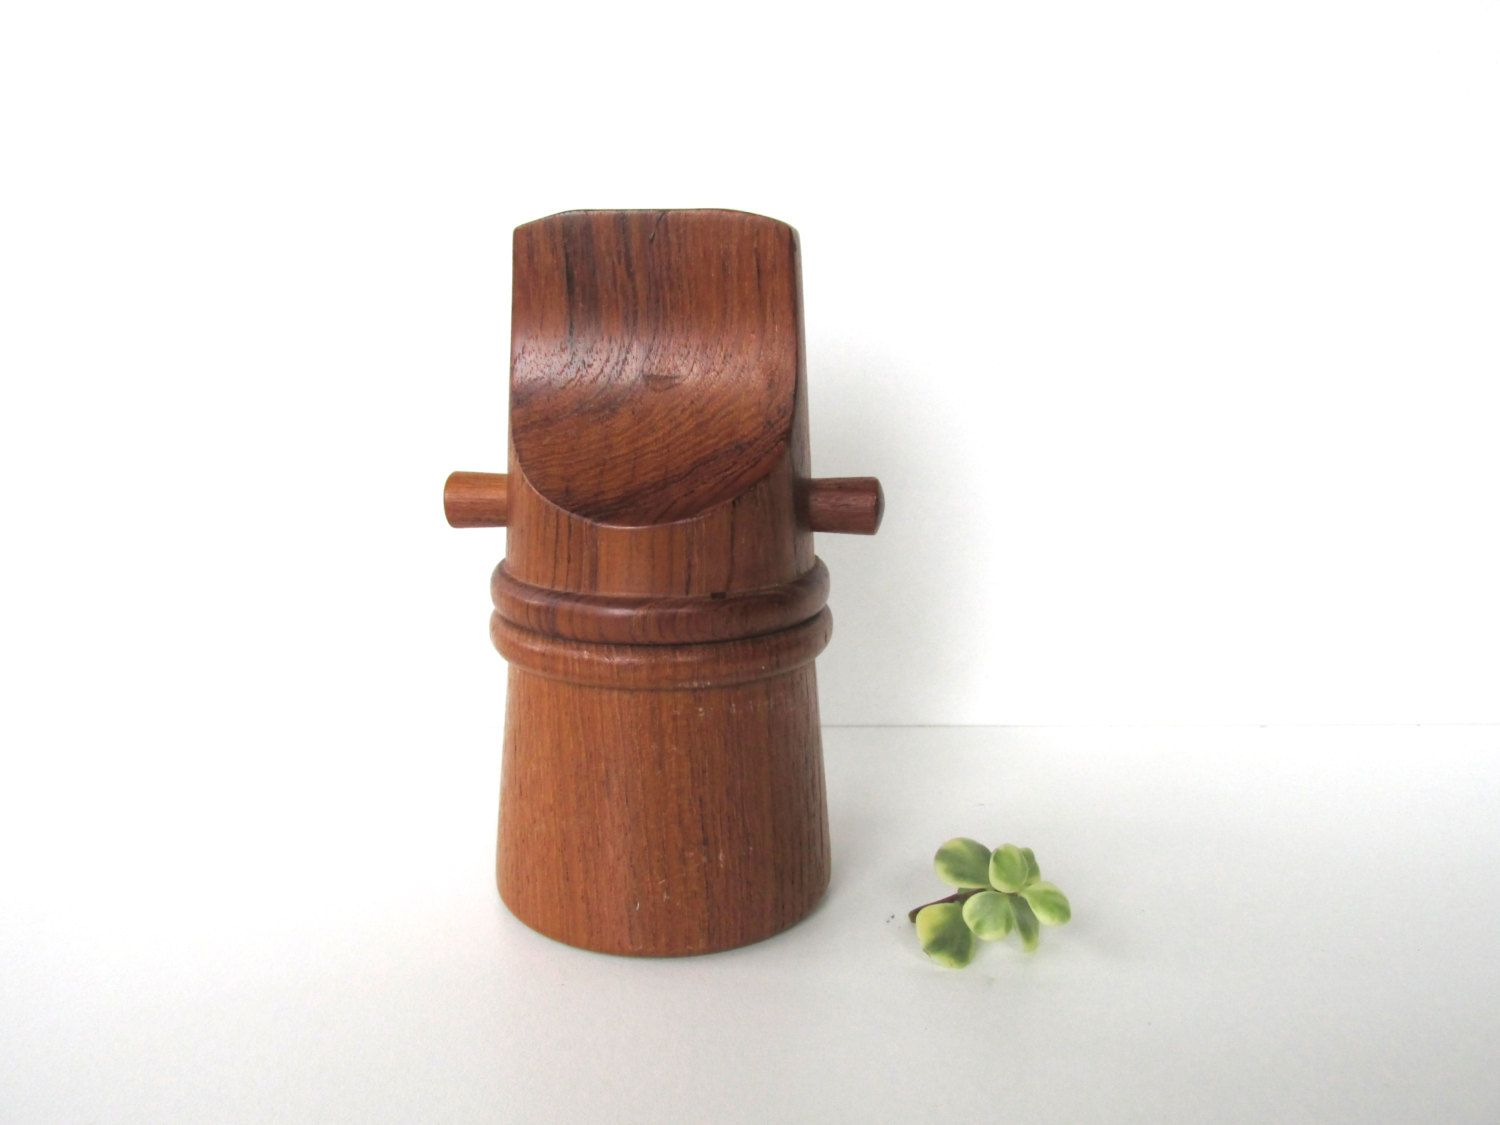 dansk teak pepper mill style  danish modern peppermill grinder  - dansk teak pepper mill danish modern pepper grinder salt shaker byhervintagecrush on etsy